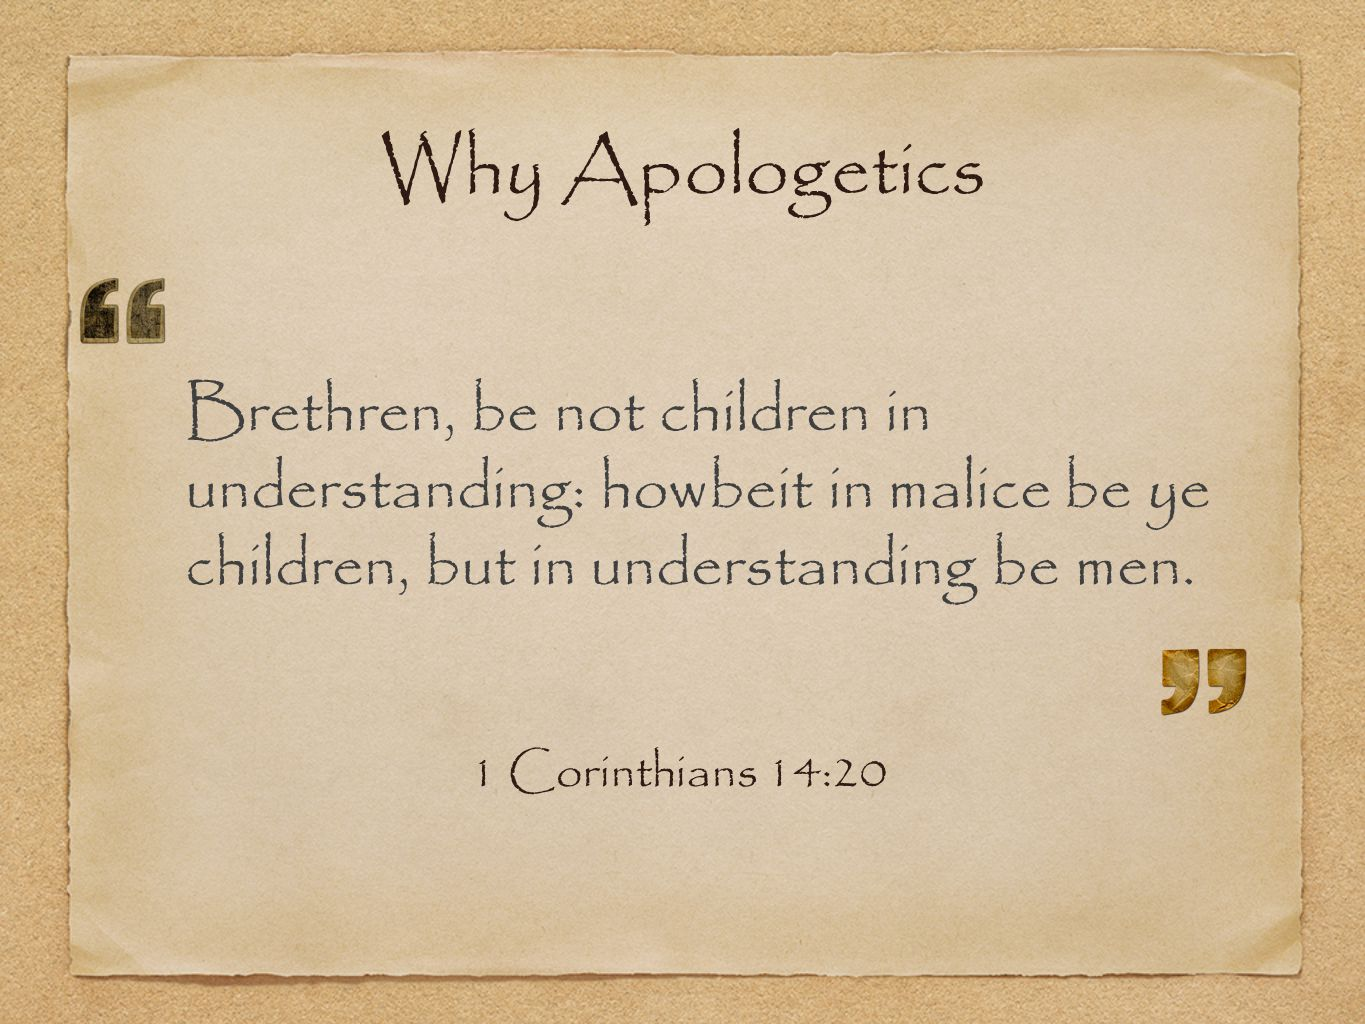 Why Apologetics Brethren, be not children in understanding: howbeit in malice be ye children, but in understanding be men.